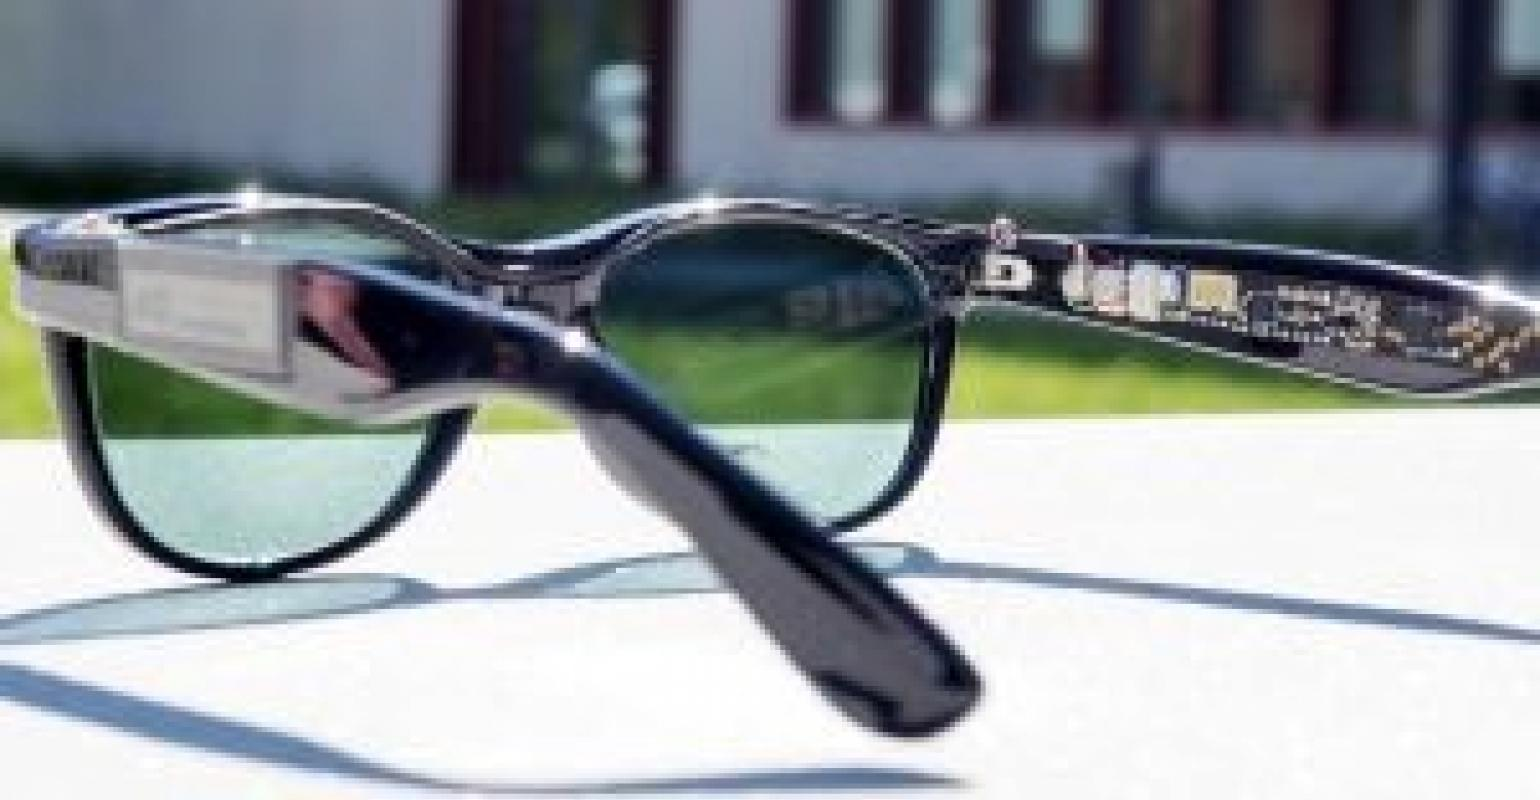 Solar Eyeglasses Used Sunlight to Power Integrated Microprocessor, Dis |  designnews.com